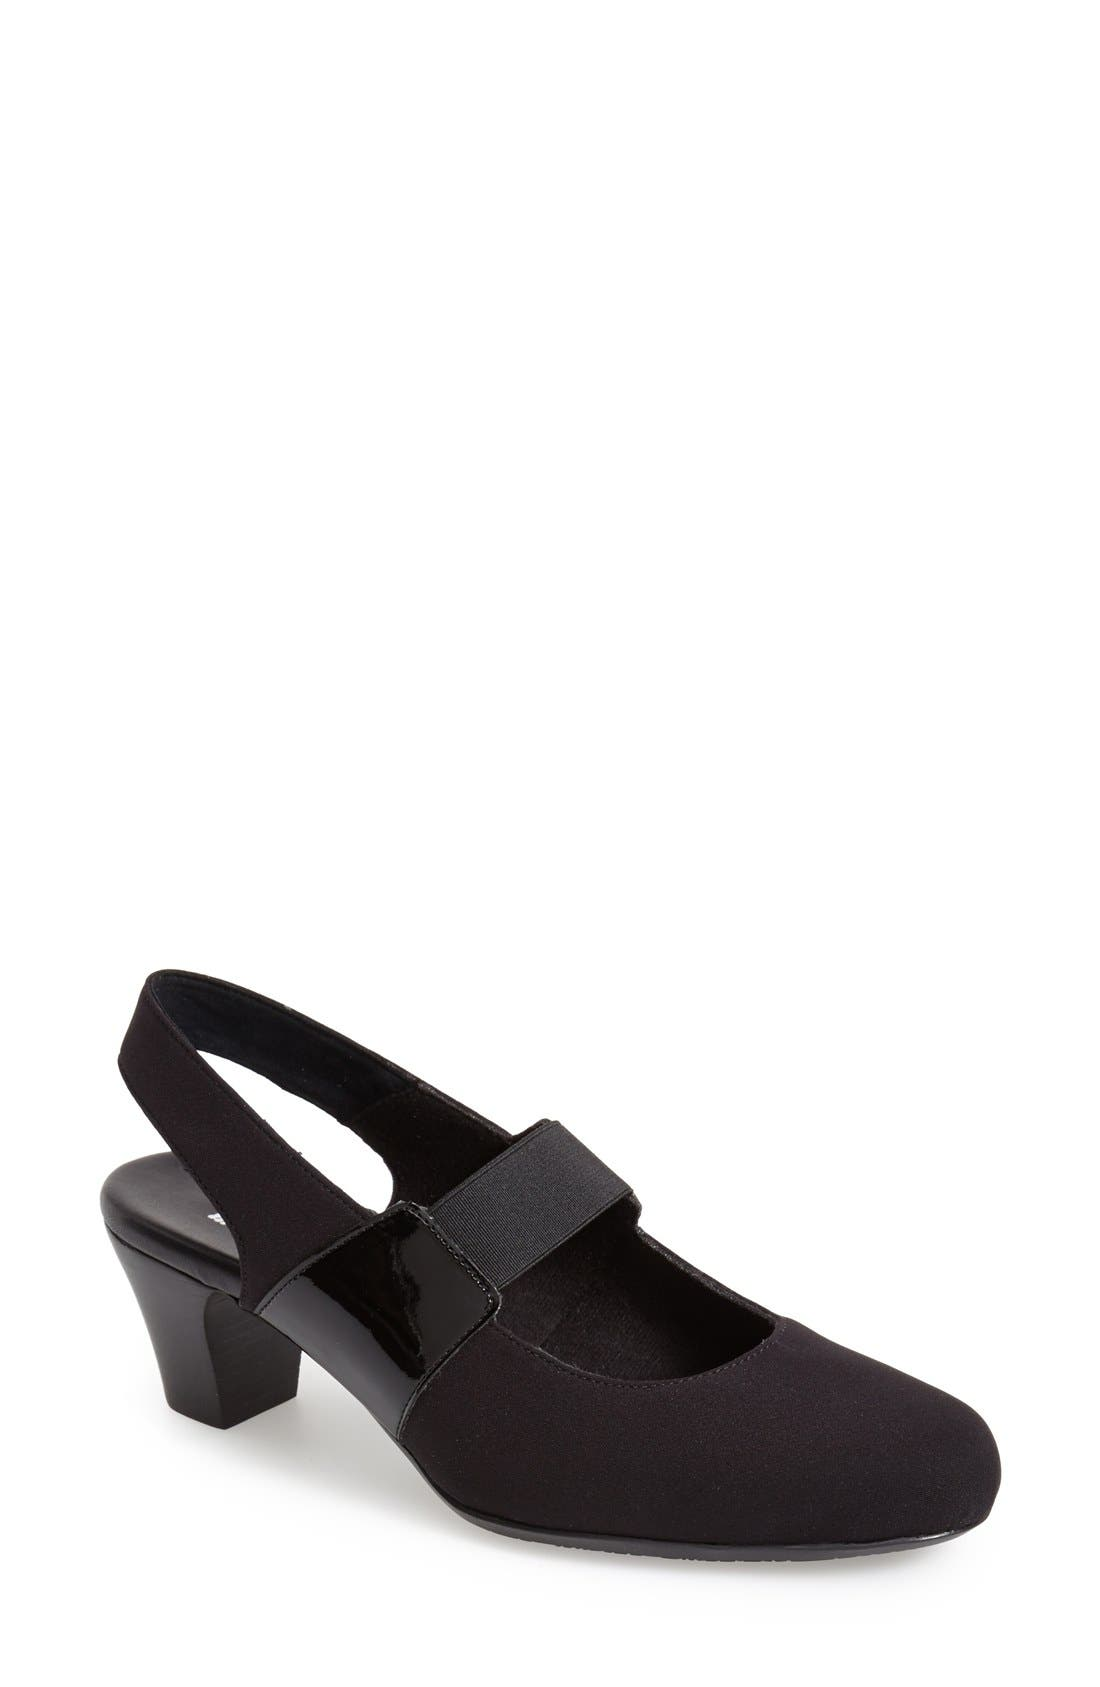 'Ella' Slingback Pump,                             Main thumbnail 1, color,                             BLACK